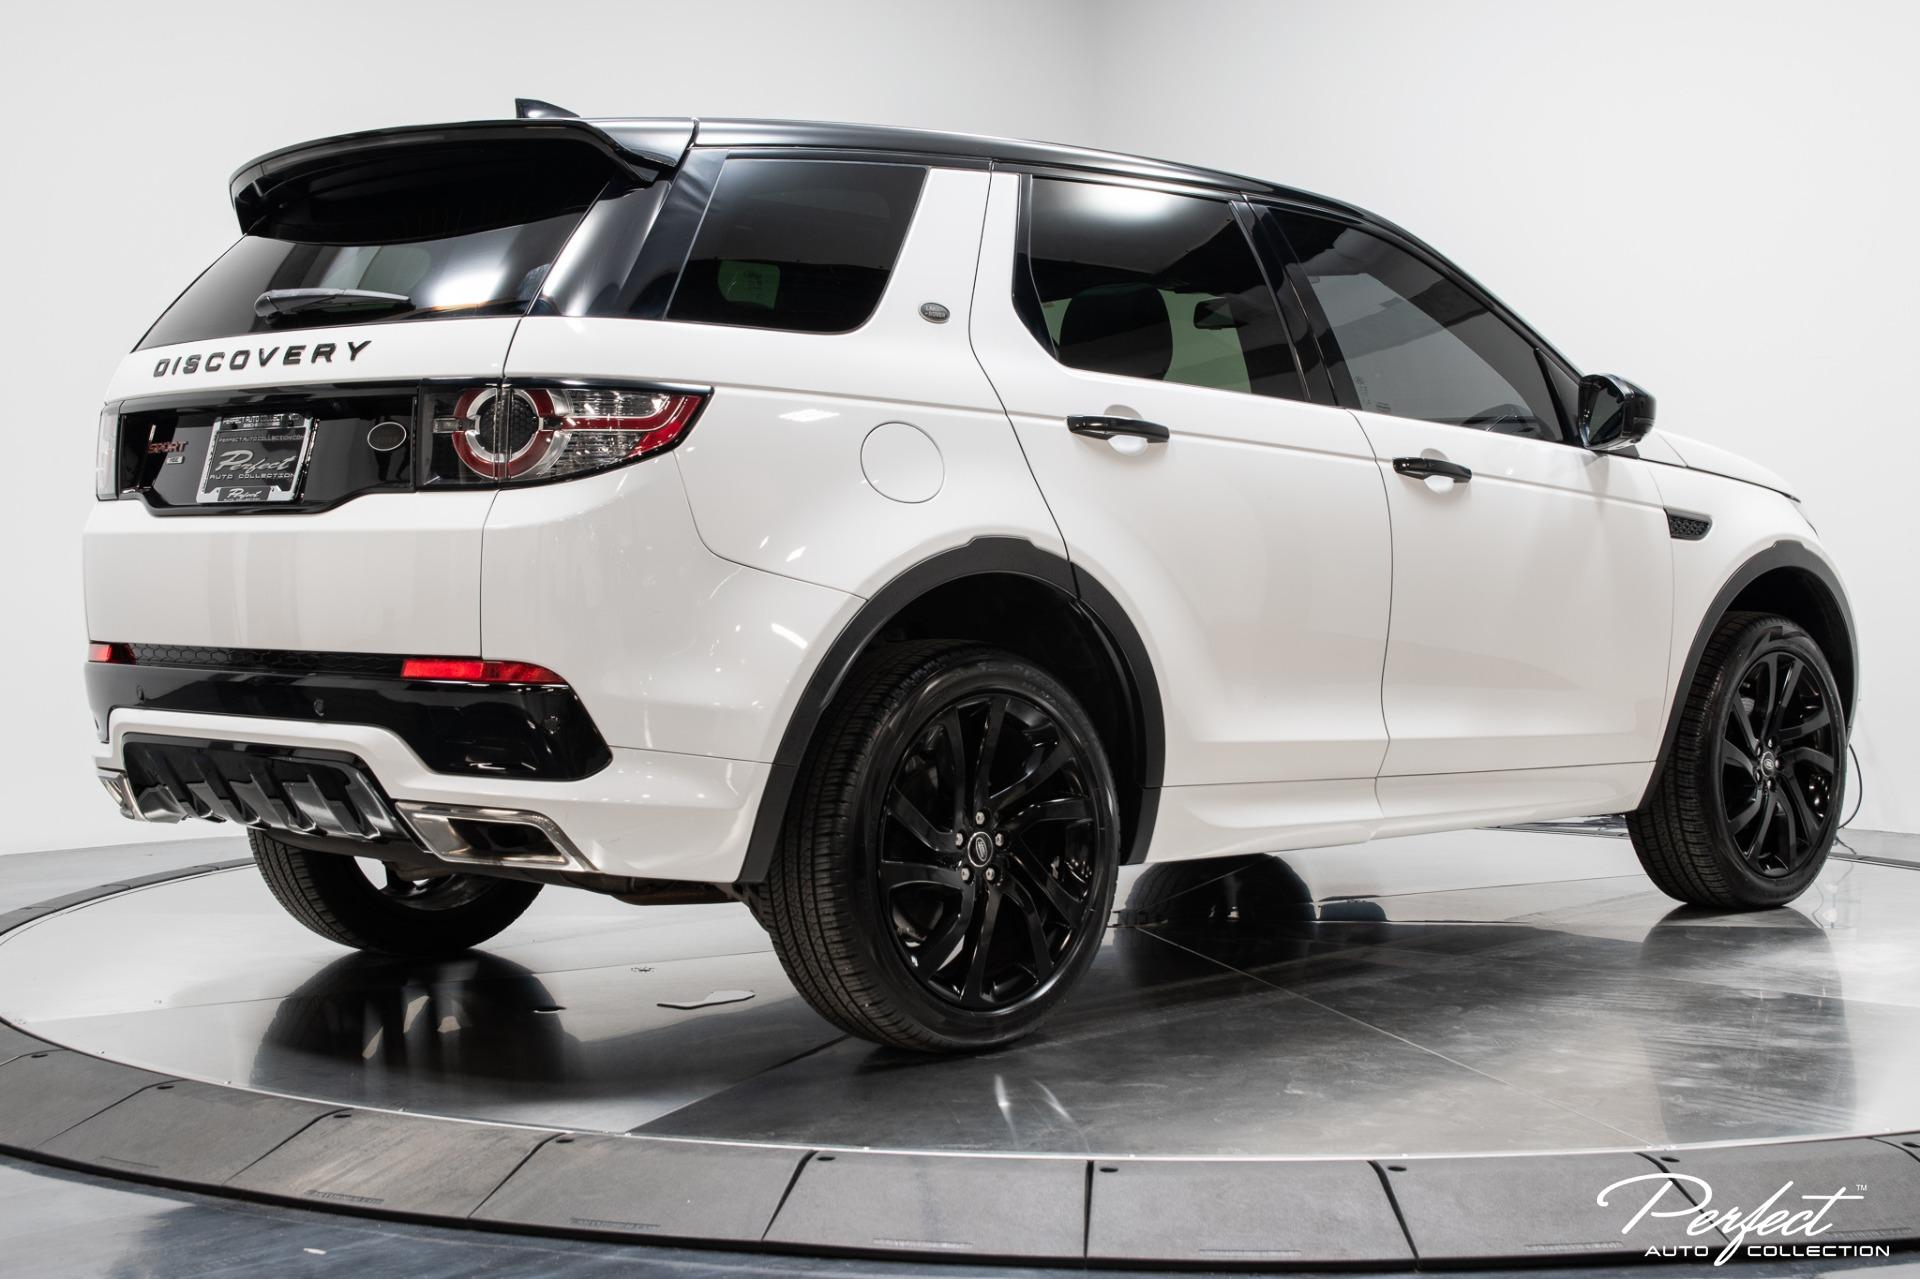 Used 2017 Land Rover Discovery Sport HSE Luxury for sale $33,993 at Perfect Auto Collection in Akron OH 44310 4